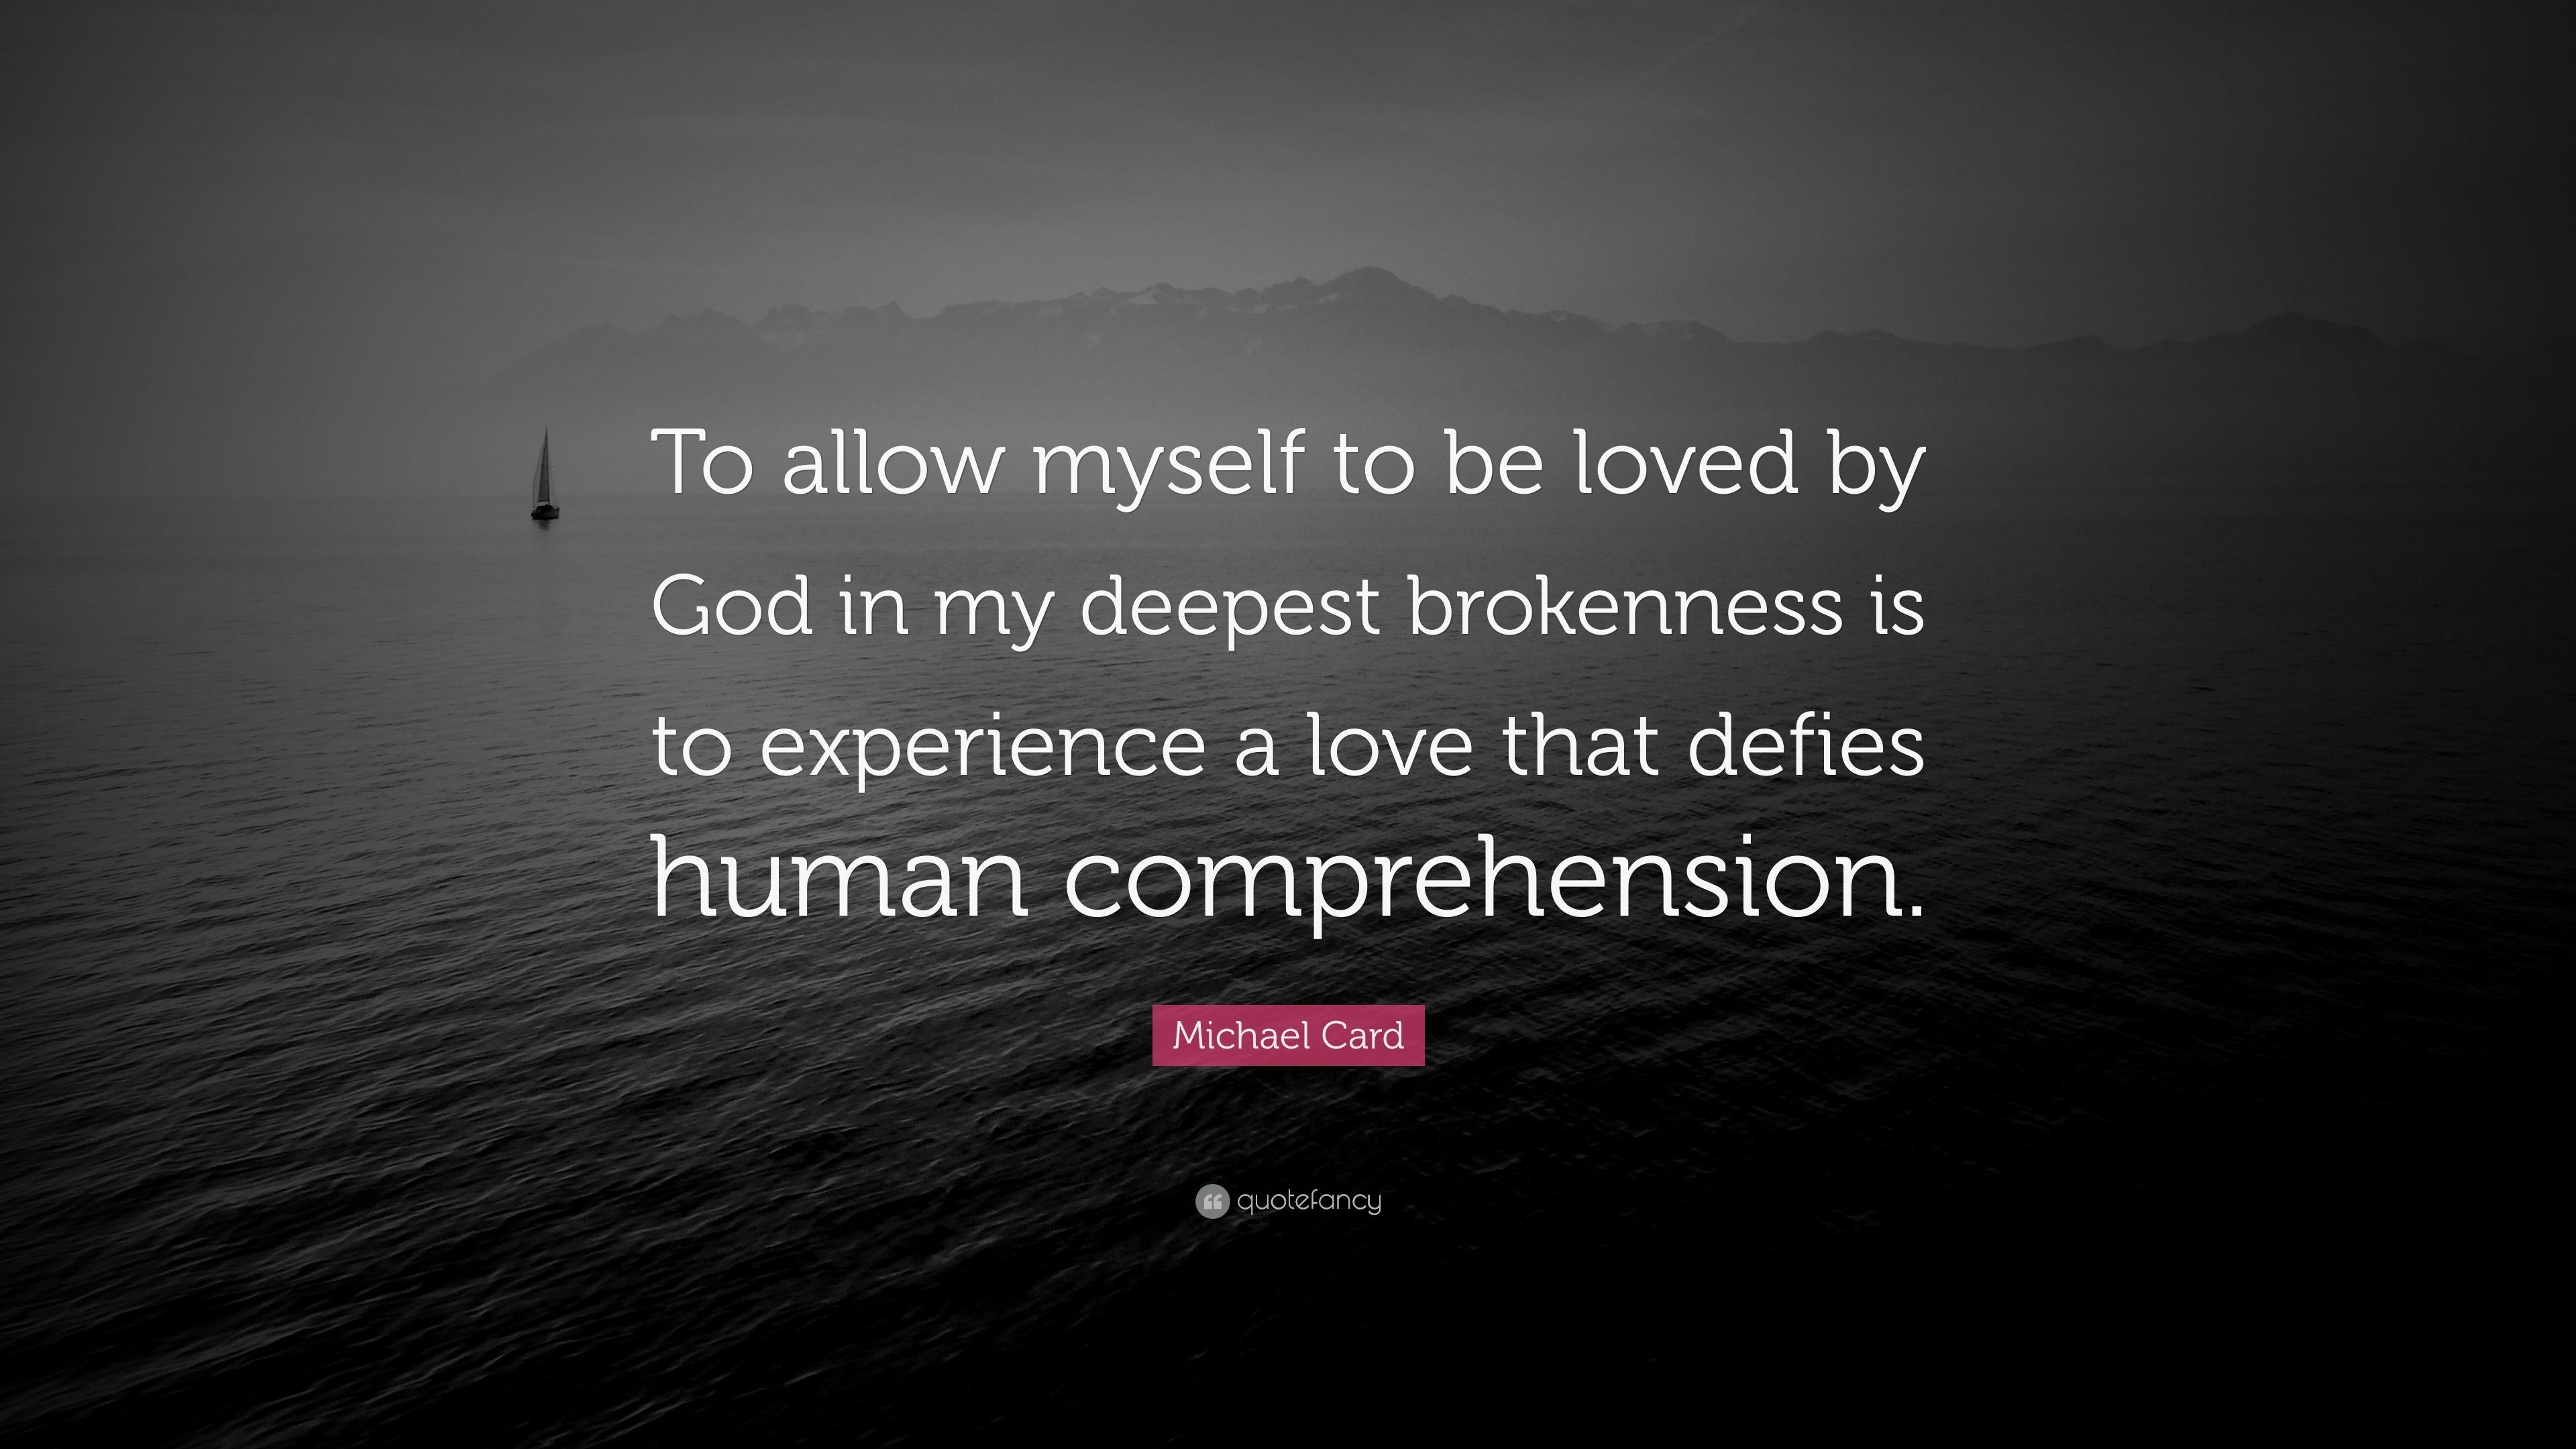 Delightful Michael Card Quote: U201cTo Allow Myself To Be Loved By God In My Deepest